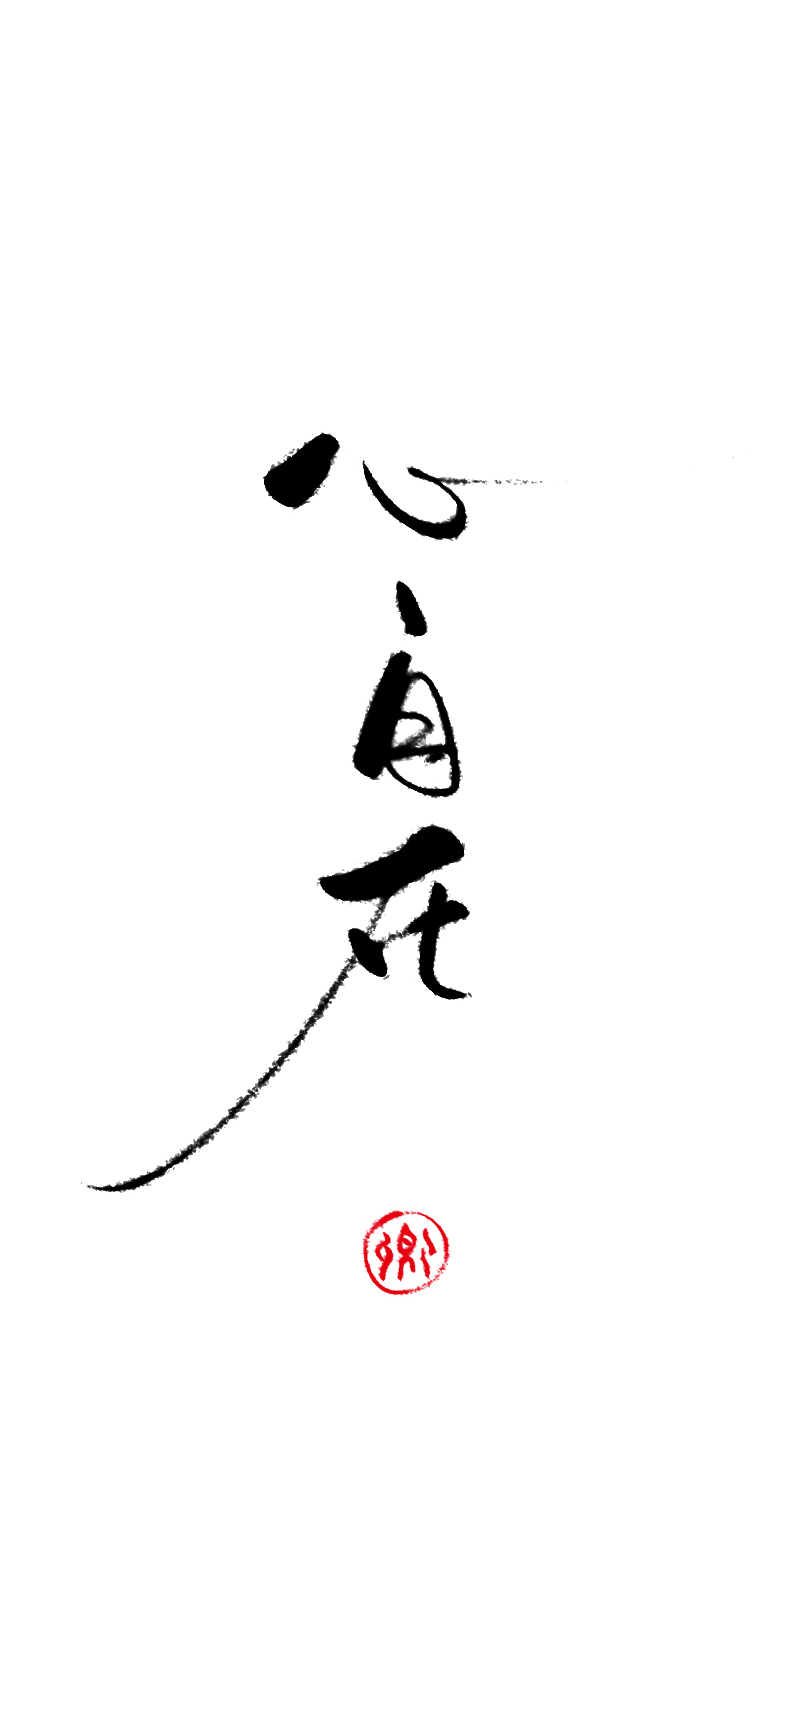 chinesefontdesign.com 2016 12 02 19 49 10 1 24P Infinite charm of the Chinese calligraphy font